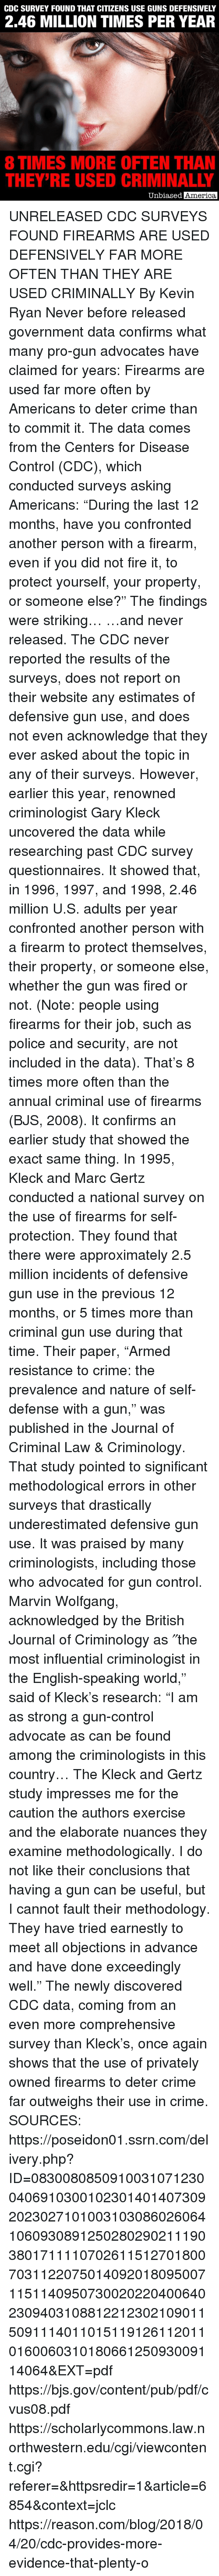 "cdc: CDC SURVEY FOUND THAT CITIZENS USE GUNS DEFENSIVELY  2.46 MILLION TIMES PER YEAR  8 TIMES MORE OFTEN THAN  THEY'RE USED CRIMINALLY  Unbiased  America UNRELEASED CDC SURVEYS FOUND FIREARMS ARE USED DEFENSIVELY FAR MORE OFTEN THAN THEY ARE USED CRIMINALLY By Kevin Ryan  Never before released government data confirms what many pro-gun advocates have claimed for years: Firearms are used far more often by Americans to deter crime than to commit it.  The data comes from the Centers for Disease Control (CDC), which conducted surveys asking Americans: ""During the last 12 months, have you confronted another person with a firearm, even if you did not fire it, to protect yourself, your property, or someone else?""  The findings were striking…  …and never released.  The CDC never reported the results of the surveys, does not report on their website any estimates of defensive gun use, and does not even acknowledge that they ever asked about the topic in any of their surveys.  However, earlier this year, renowned criminologist Gary Kleck uncovered the data while researching past CDC survey questionnaires.  It showed that, in 1996, 1997, and 1998, 2.46 million U.S. adults per year confronted another person with a firearm to protect themselves, their property, or someone else, whether the gun was fired or not. (Note: people using firearms for their job, such as police and security, are not included in the data).  That's 8 times more often than the annual criminal use of firearms (BJS, 2008).  It confirms an earlier study that showed the exact same thing.  In 1995, Kleck and Marc Gertz conducted a national survey on the use of firearms for self-protection.  They found that there were approximately 2.5 million incidents of defensive gun use in the previous 12 months, or 5 times more than criminal gun use during that time.  Their paper, ""Armed resistance to crime: the prevalence and nature of self-defense with a gun,"" was published in the Journal of Criminal Law & Criminology.  That study pointed to significant methodological errors in other surveys that drastically underestimated defensive gun use.  It was praised by many criminologists, including those who advocated for gun control.  Marvin Wolfgang, acknowledged by the British Journal of Criminology as ″the most influential criminologist in the English-speaking world,"" said of Kleck's research:  ""I am as strong a gun-control advocate as can be found among the criminologists in this country… The Kleck and Gertz study impresses me for the caution the authors exercise and the elaborate nuances they examine methodologically. I do not like their conclusions that having a gun can be useful, but I cannot fault their methodology. They have tried earnestly to meet all objections in advance and have done exceedingly well.""  The newly discovered CDC data, coming from an even more comprehensive survey than Kleck's, once again shows that the use of privately owned firearms to deter crime far outweighs their use in crime.  SOURCES:  https://poseidon01.ssrn.com/delivery.php?ID=083008085091003107123004069103001023014014073092023027101003103086026064106093089125028029021119038017111107026115127018007031122075014092018095007115114095073002022040064023094031088122123021090115091114011015119126112011016006031018066125093009114064&EXT=pdf https://bjs.gov/content/pub/pdf/cvus08.pdf https://scholarlycommons.law.northwestern.edu/cgi/viewcontent.cgi?referer=&httpsredir=1&article=6854&context=jclc https://reason.com/blog/2018/04/20/cdc-provides-more-evidence-that-plenty-o"